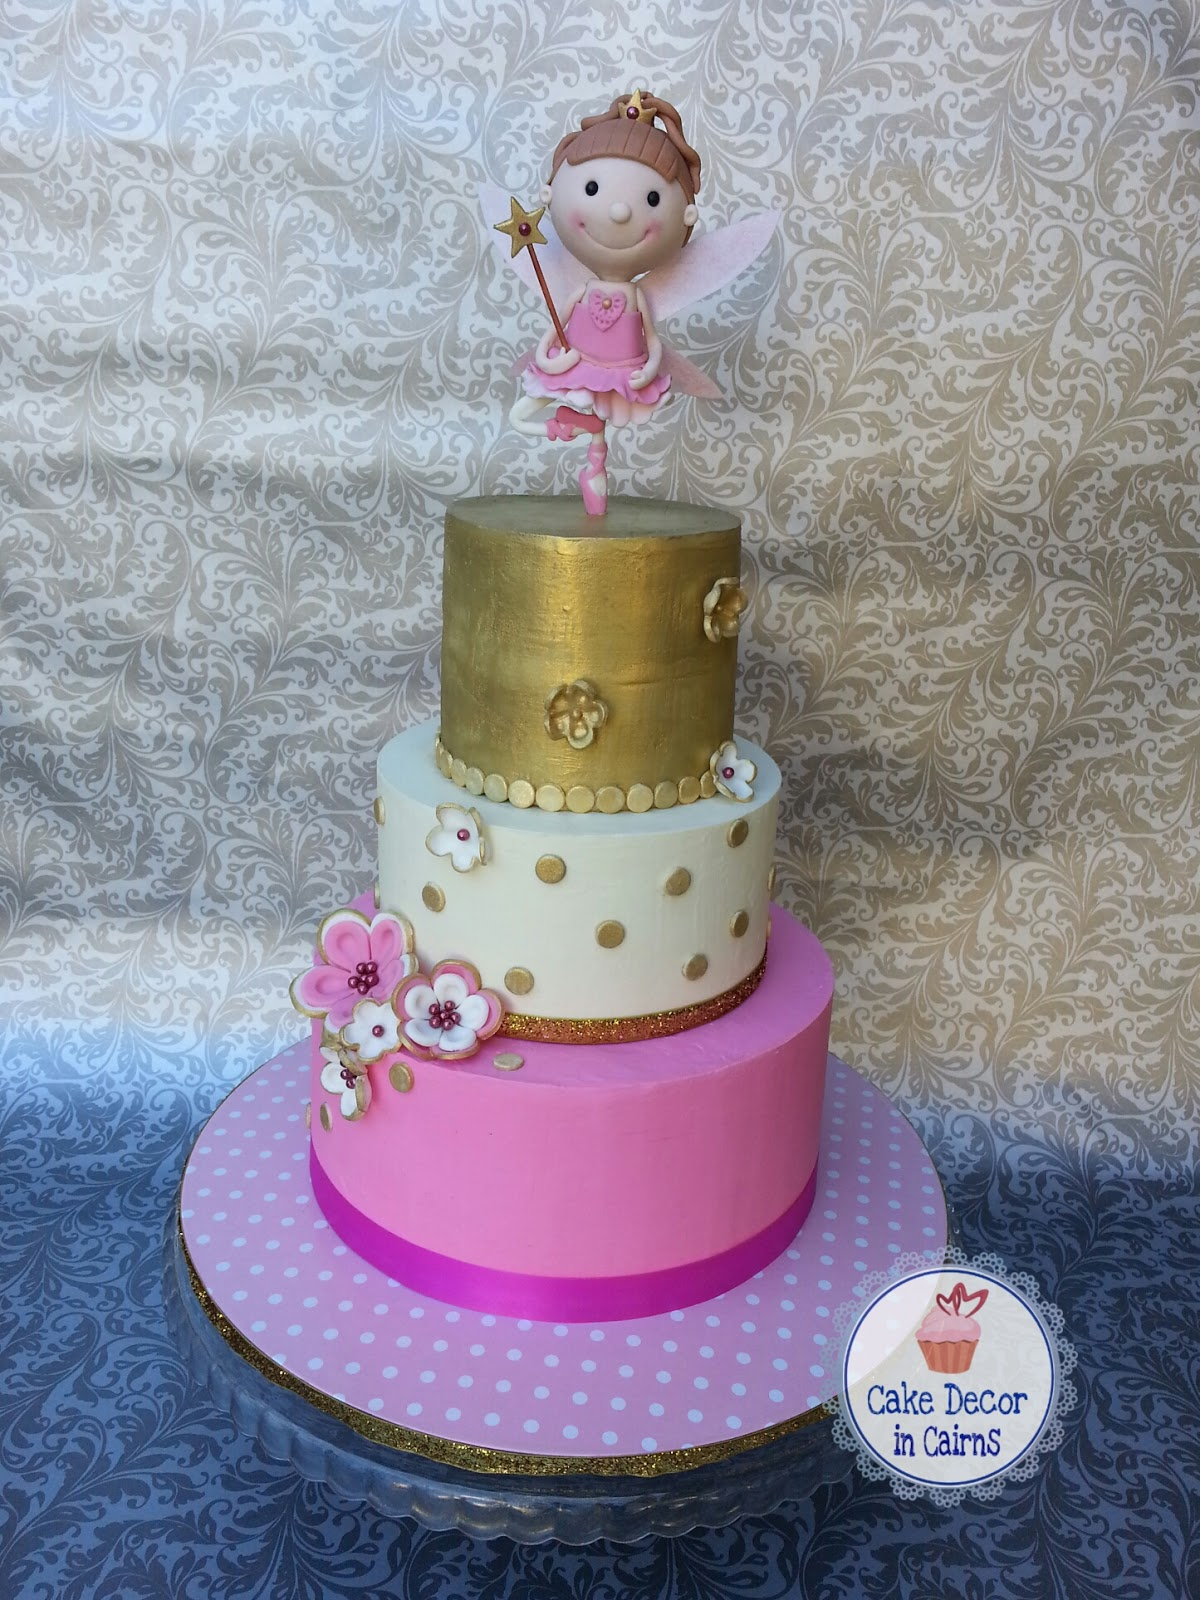 Ballerina Fairy Cake Coloured colored Ganache 3 tiers pink white and gold with fondant topper